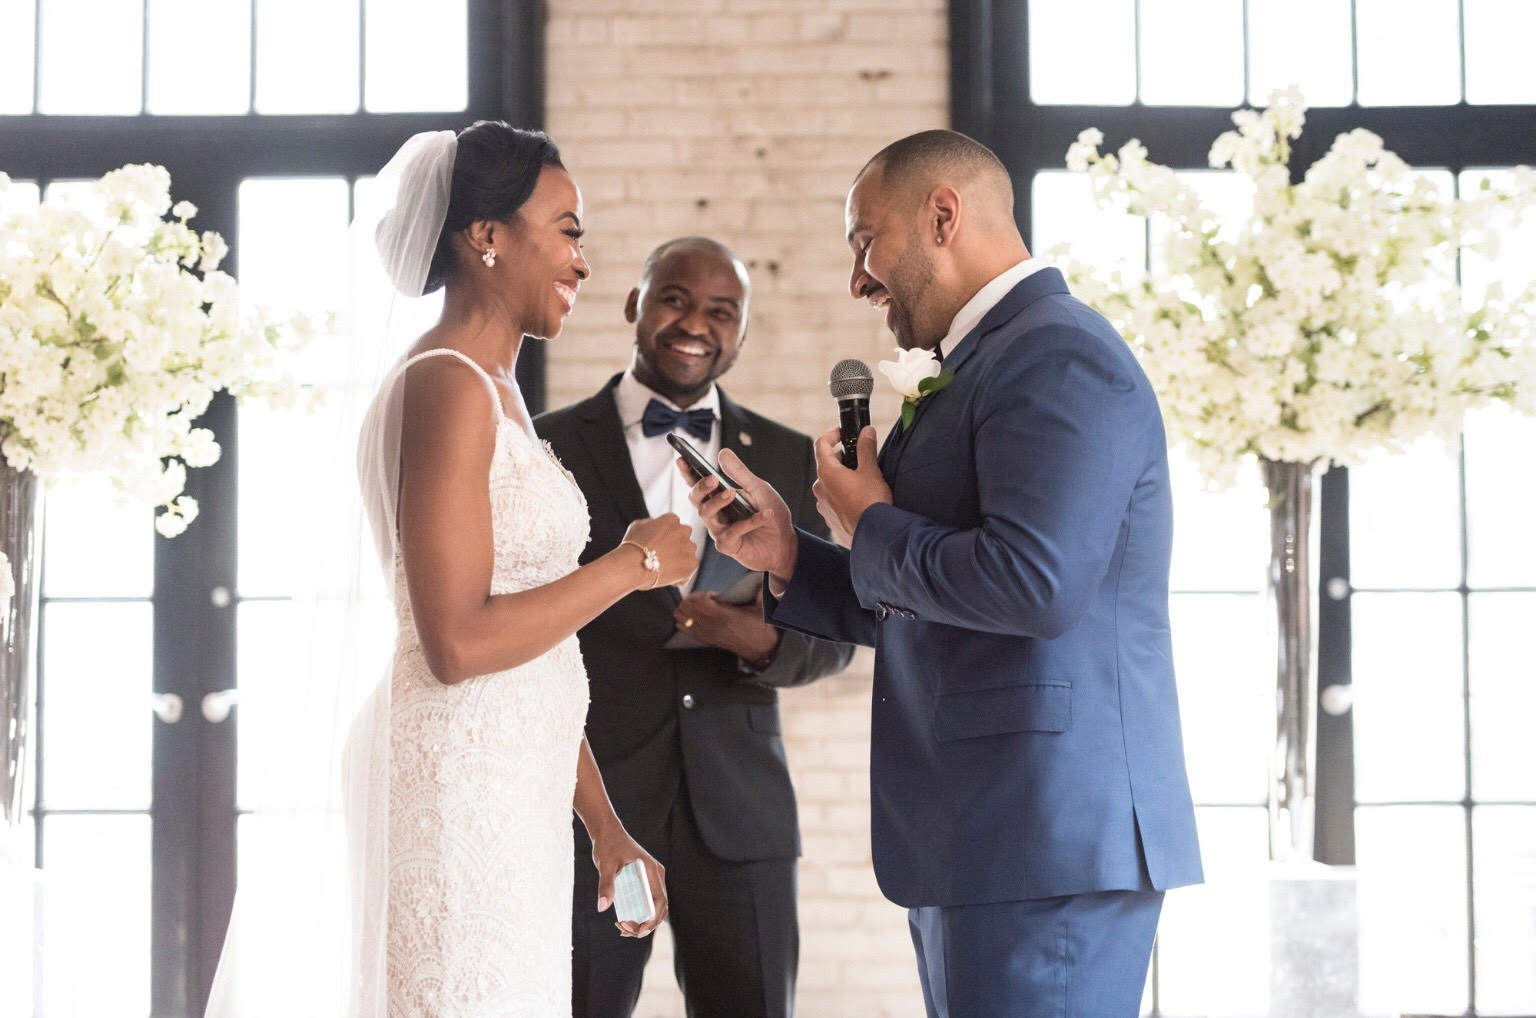 Storys Building Wedding Officiant